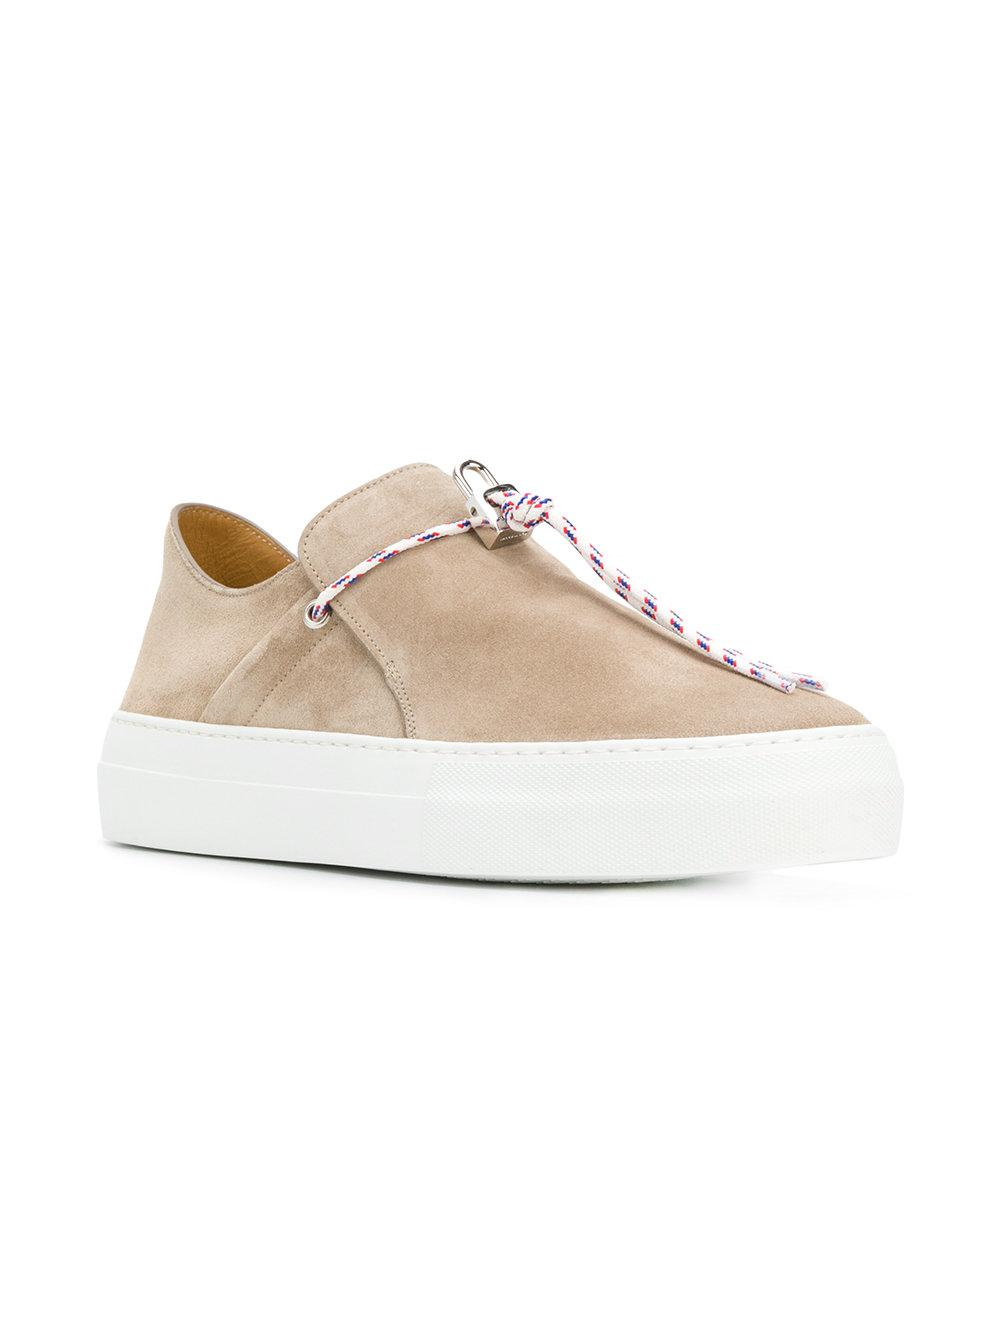 Sabot Campo sneakers - Nude & Neutrals Buscemi TGenr